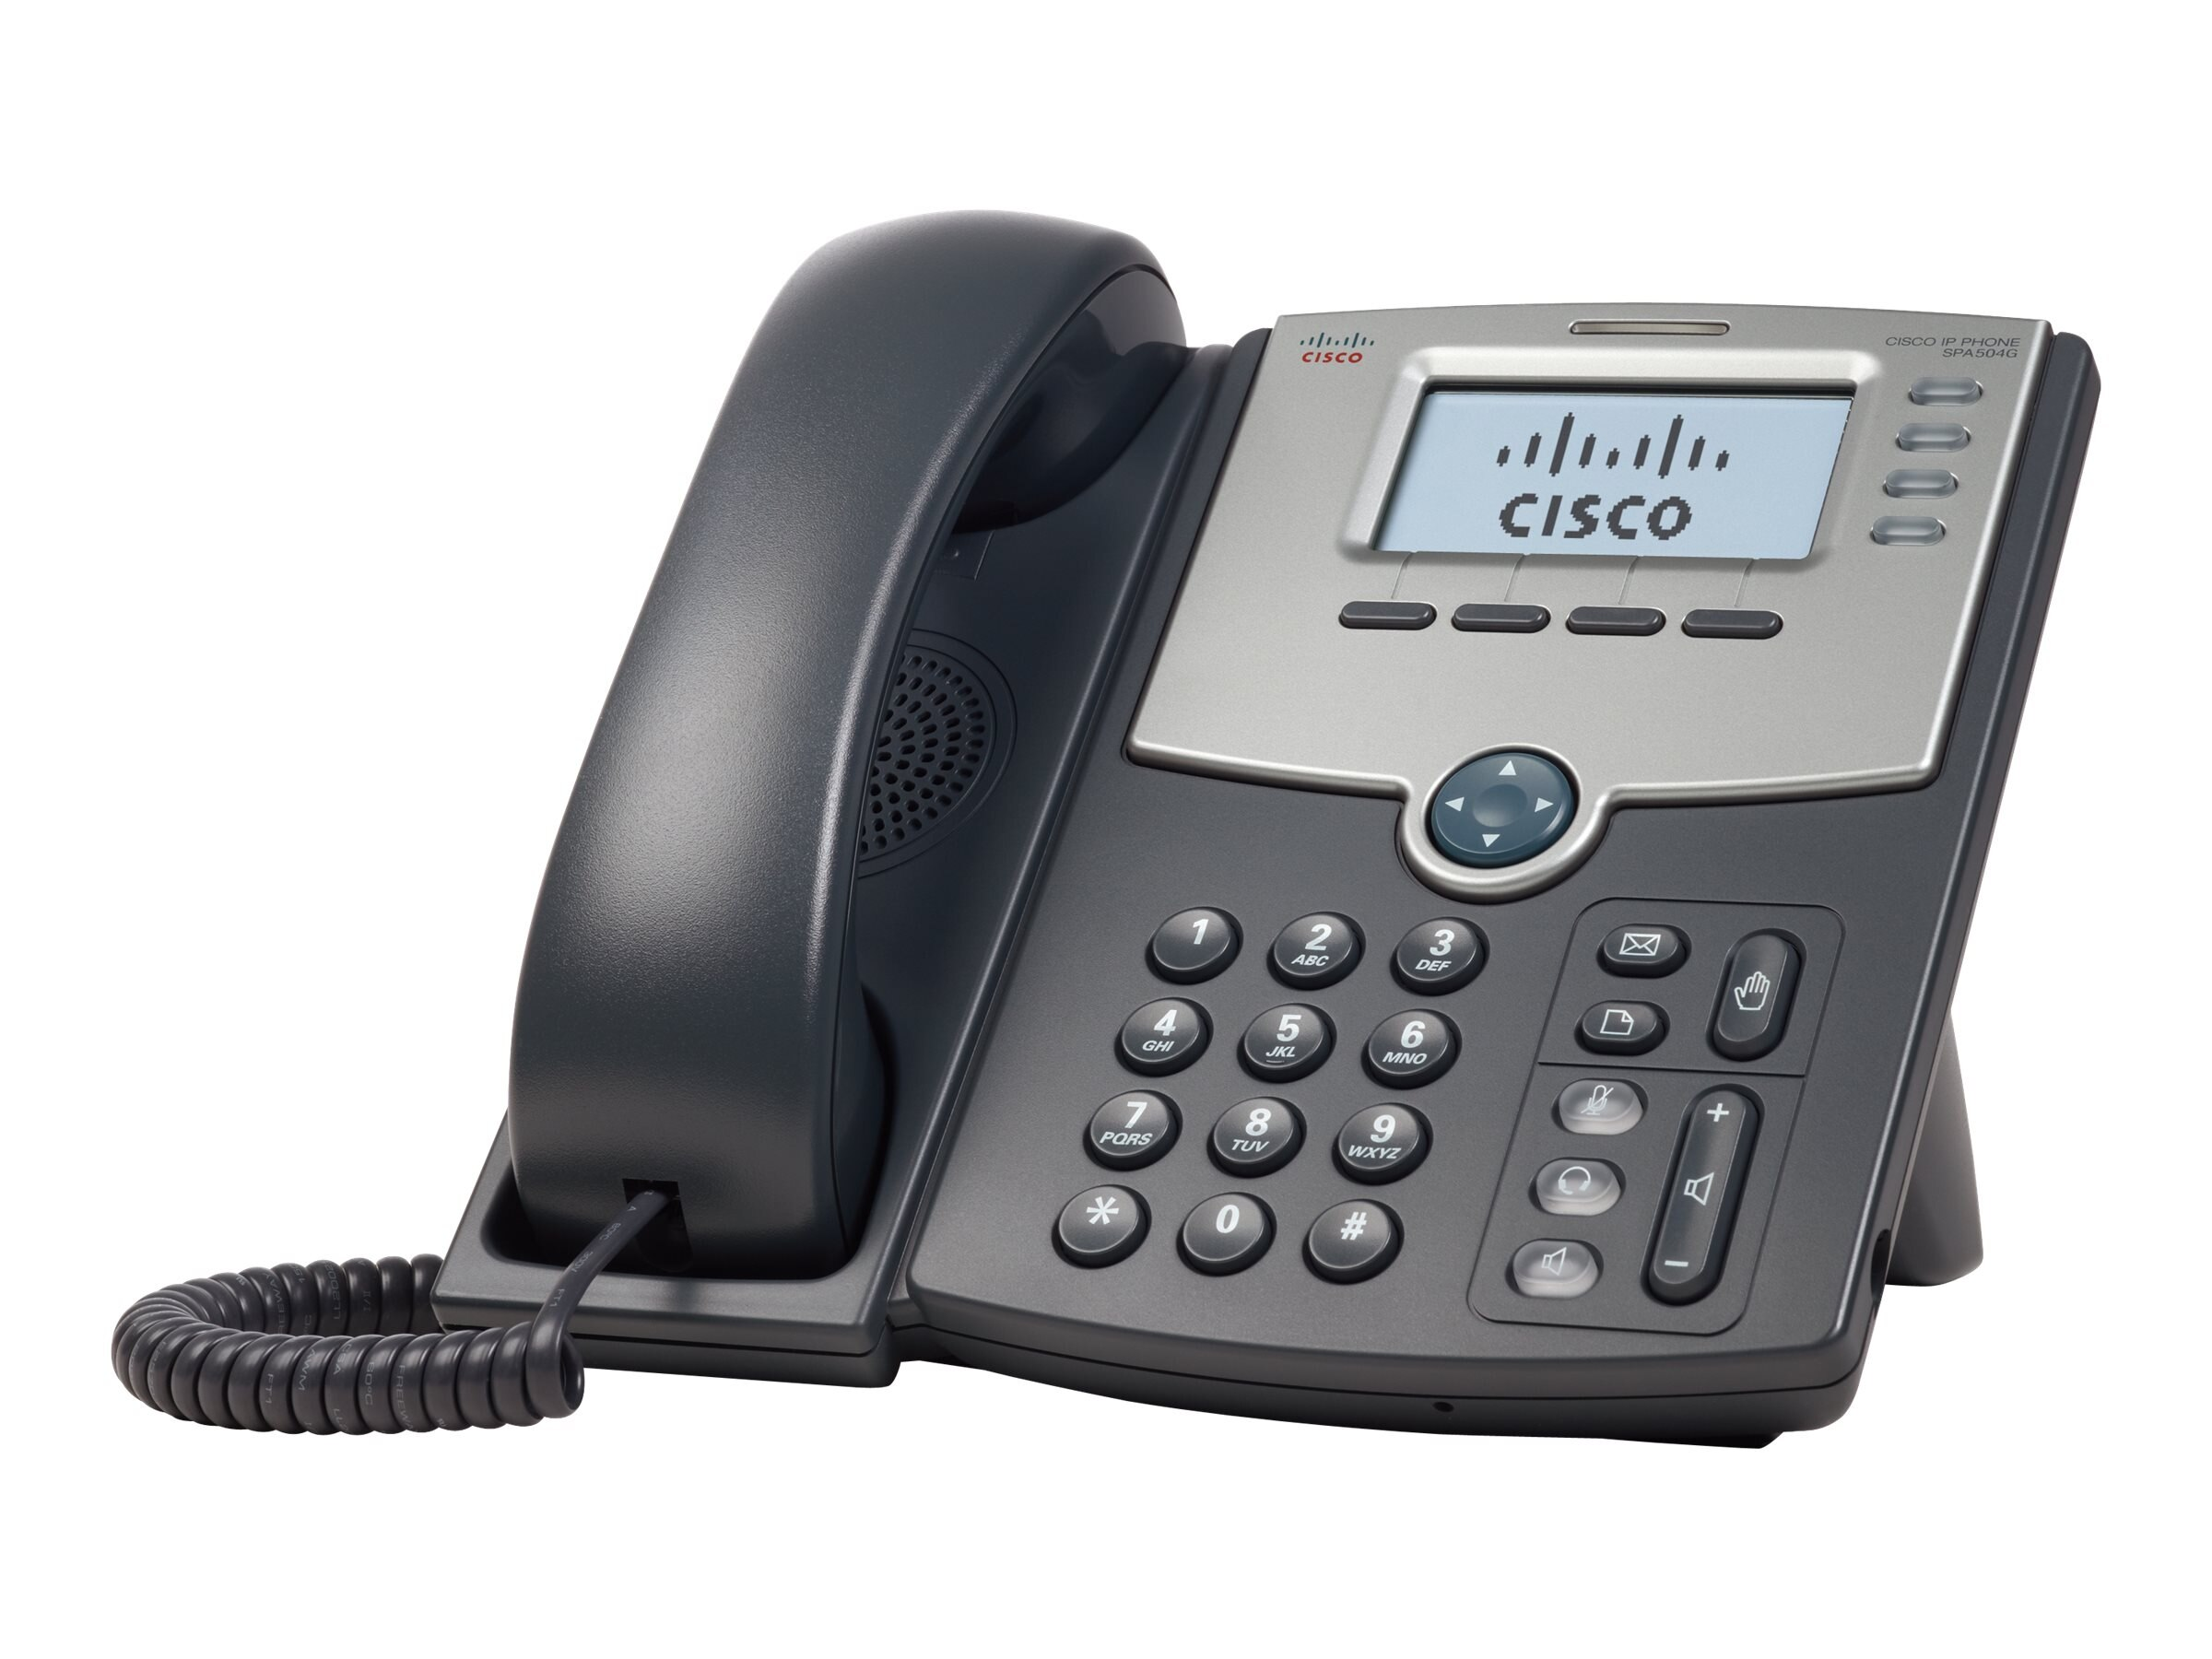 Cisco SPA504G 4-Line IP Phone with 2-Port Switch, PoE and LCD Display, SPA504G